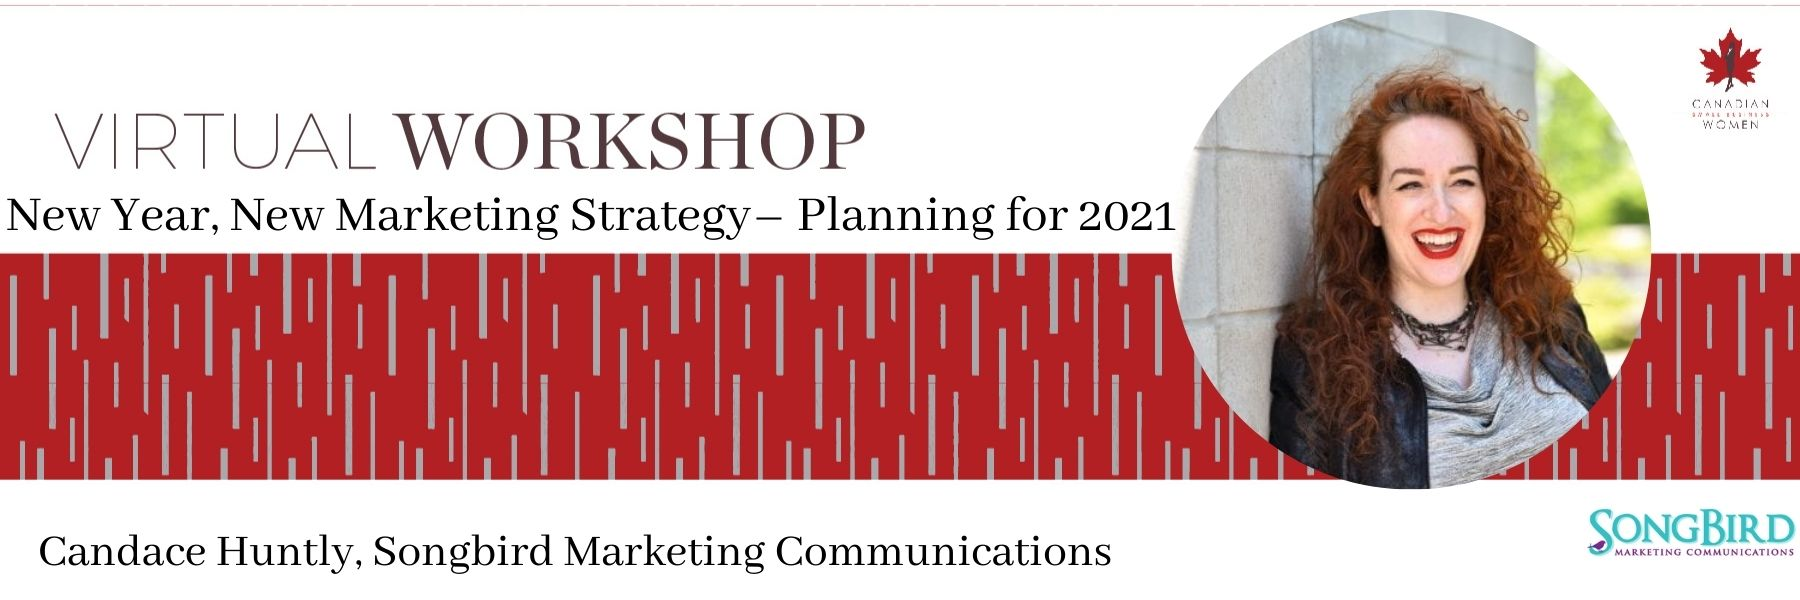 New Year, New Marketing Strategy: Planning for 2021